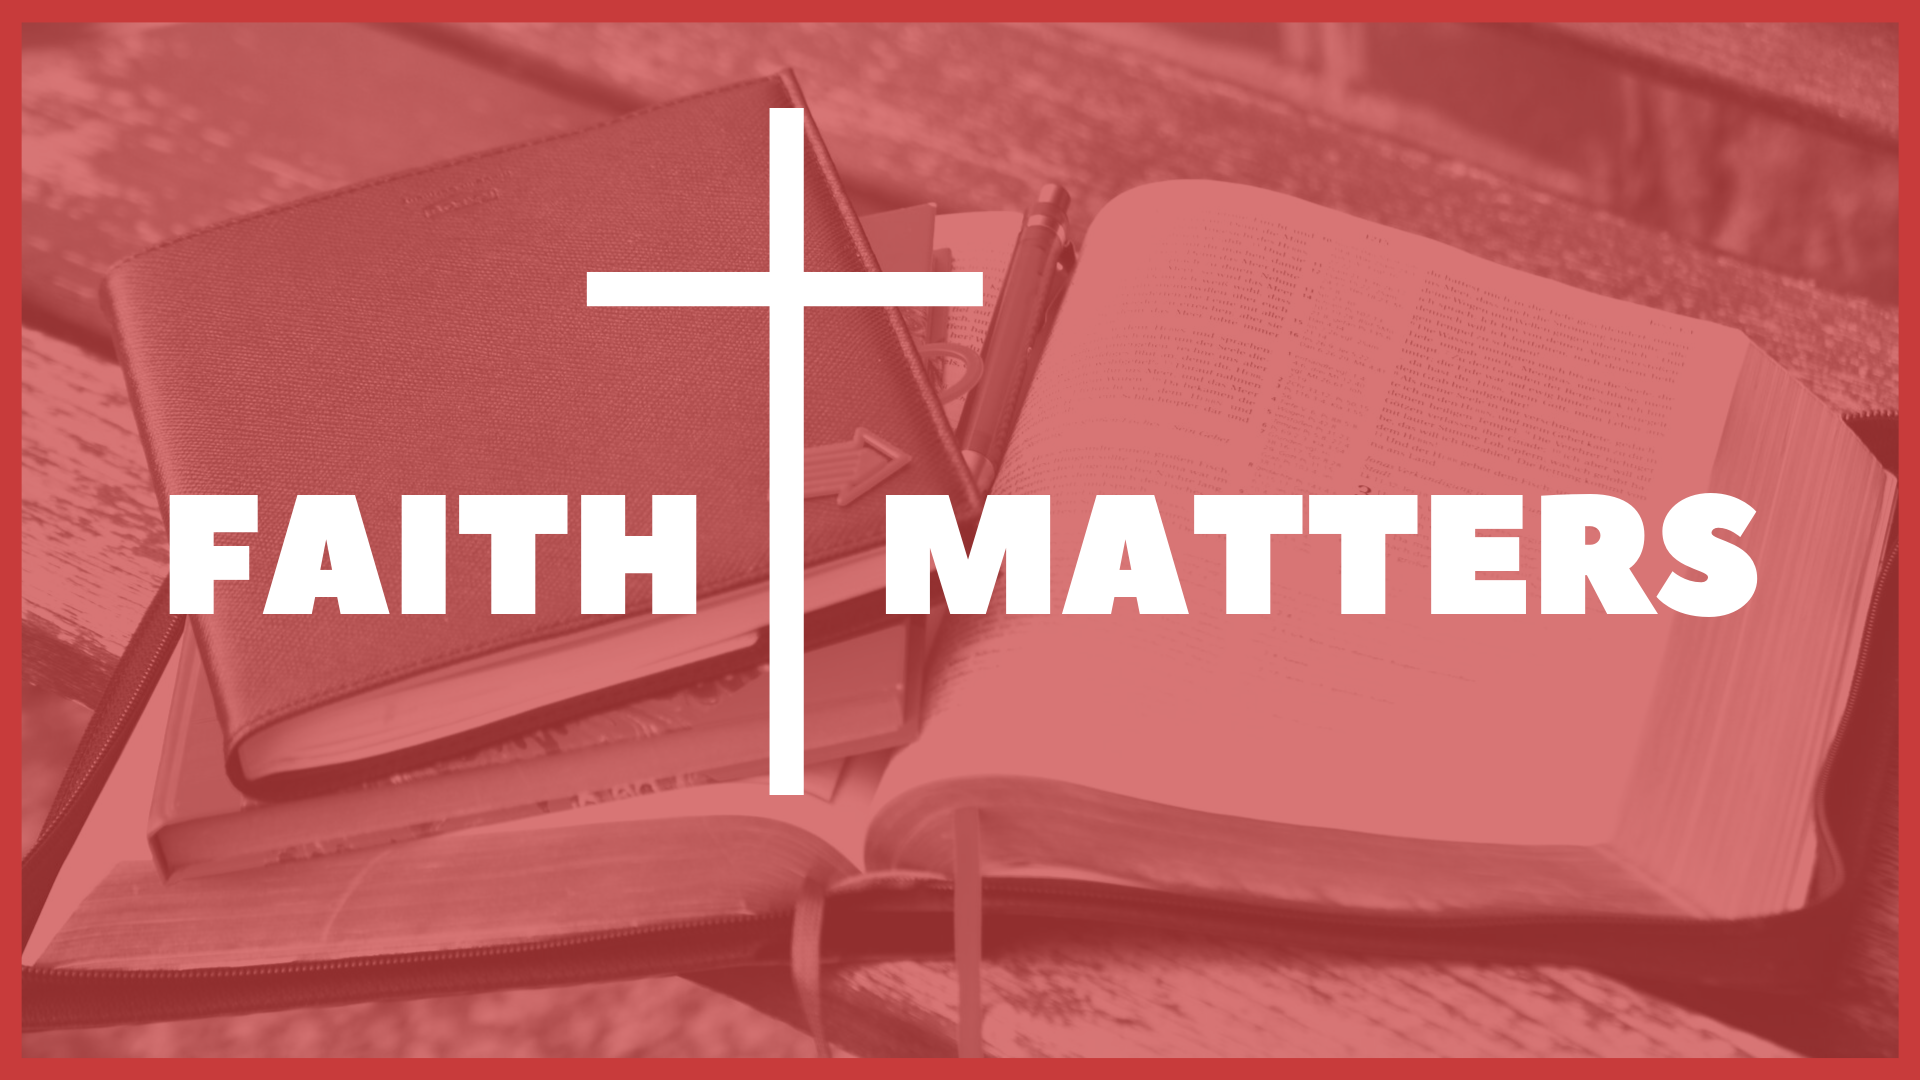 A relationship with Jesus influences the way that you view your life and the way you live it. Those changes are important but challenging to both understand and to apply. Listen to Jesus discuss these matters of faith and see how faith truly does matter!